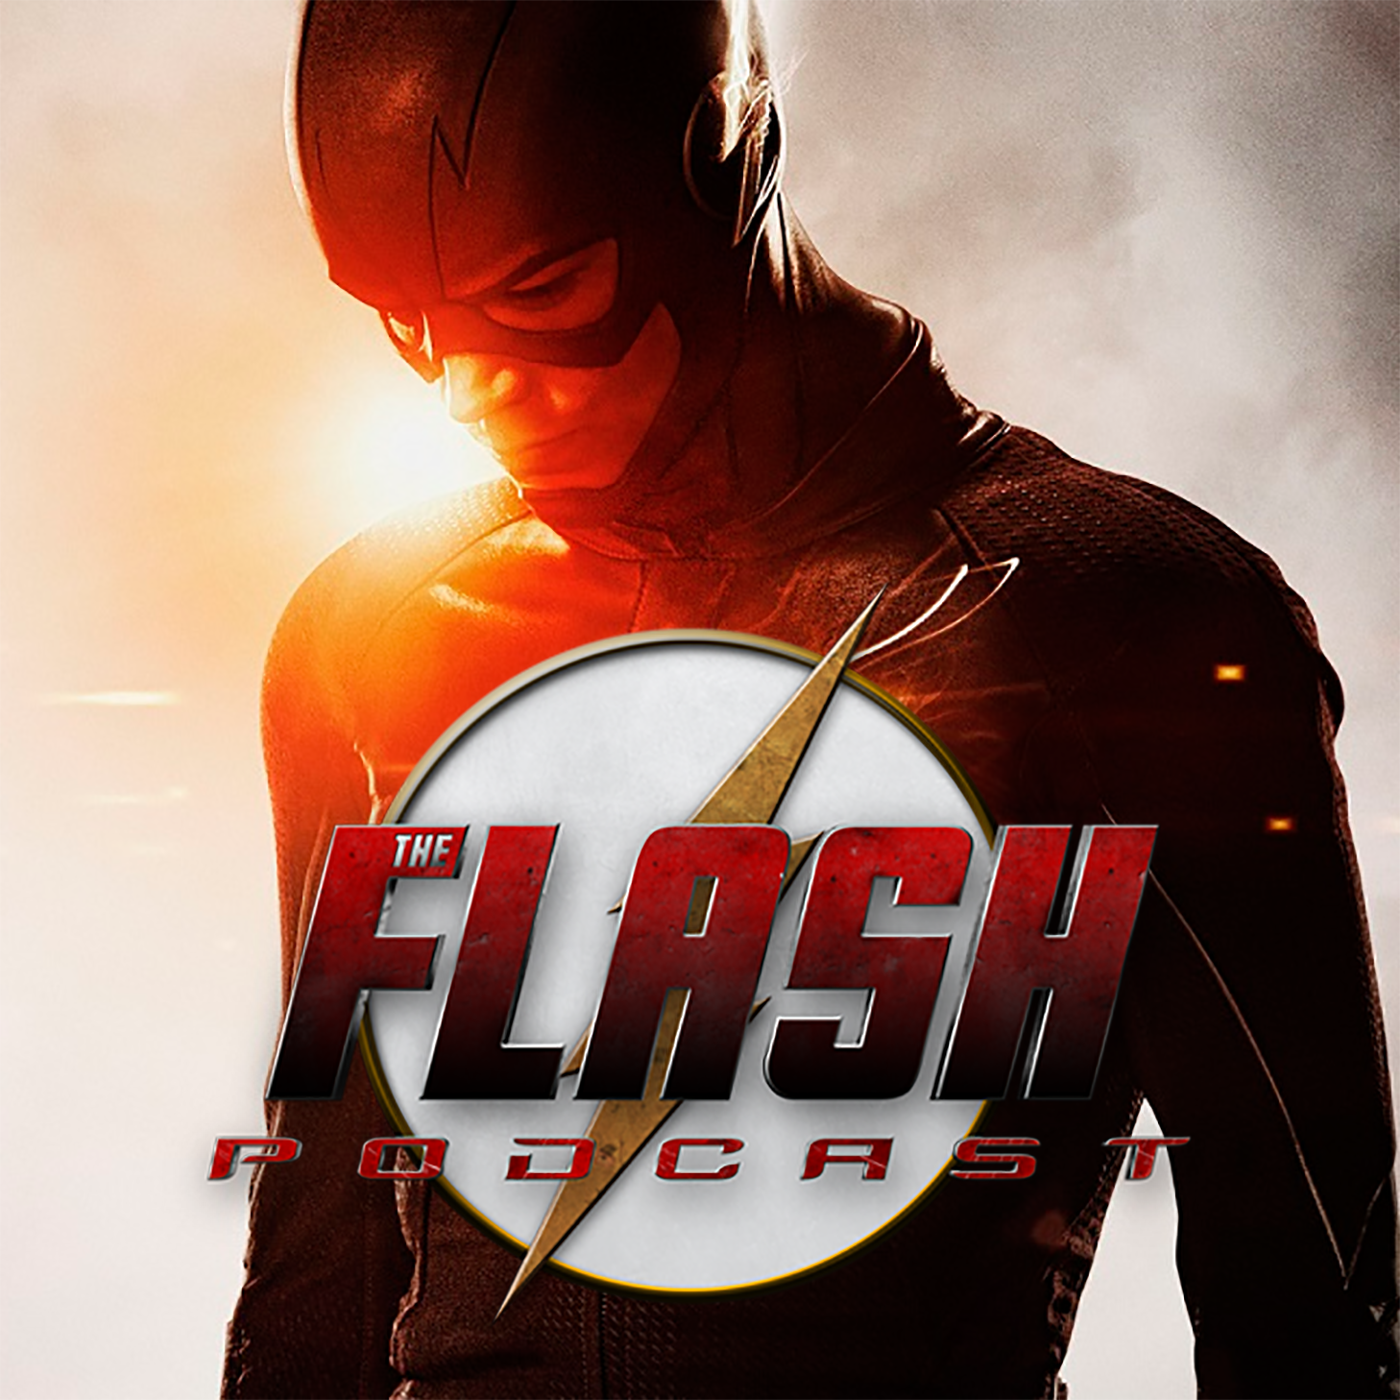 The Flash Podcast Season 2 - Episode 1: The Man Who Saved Central City